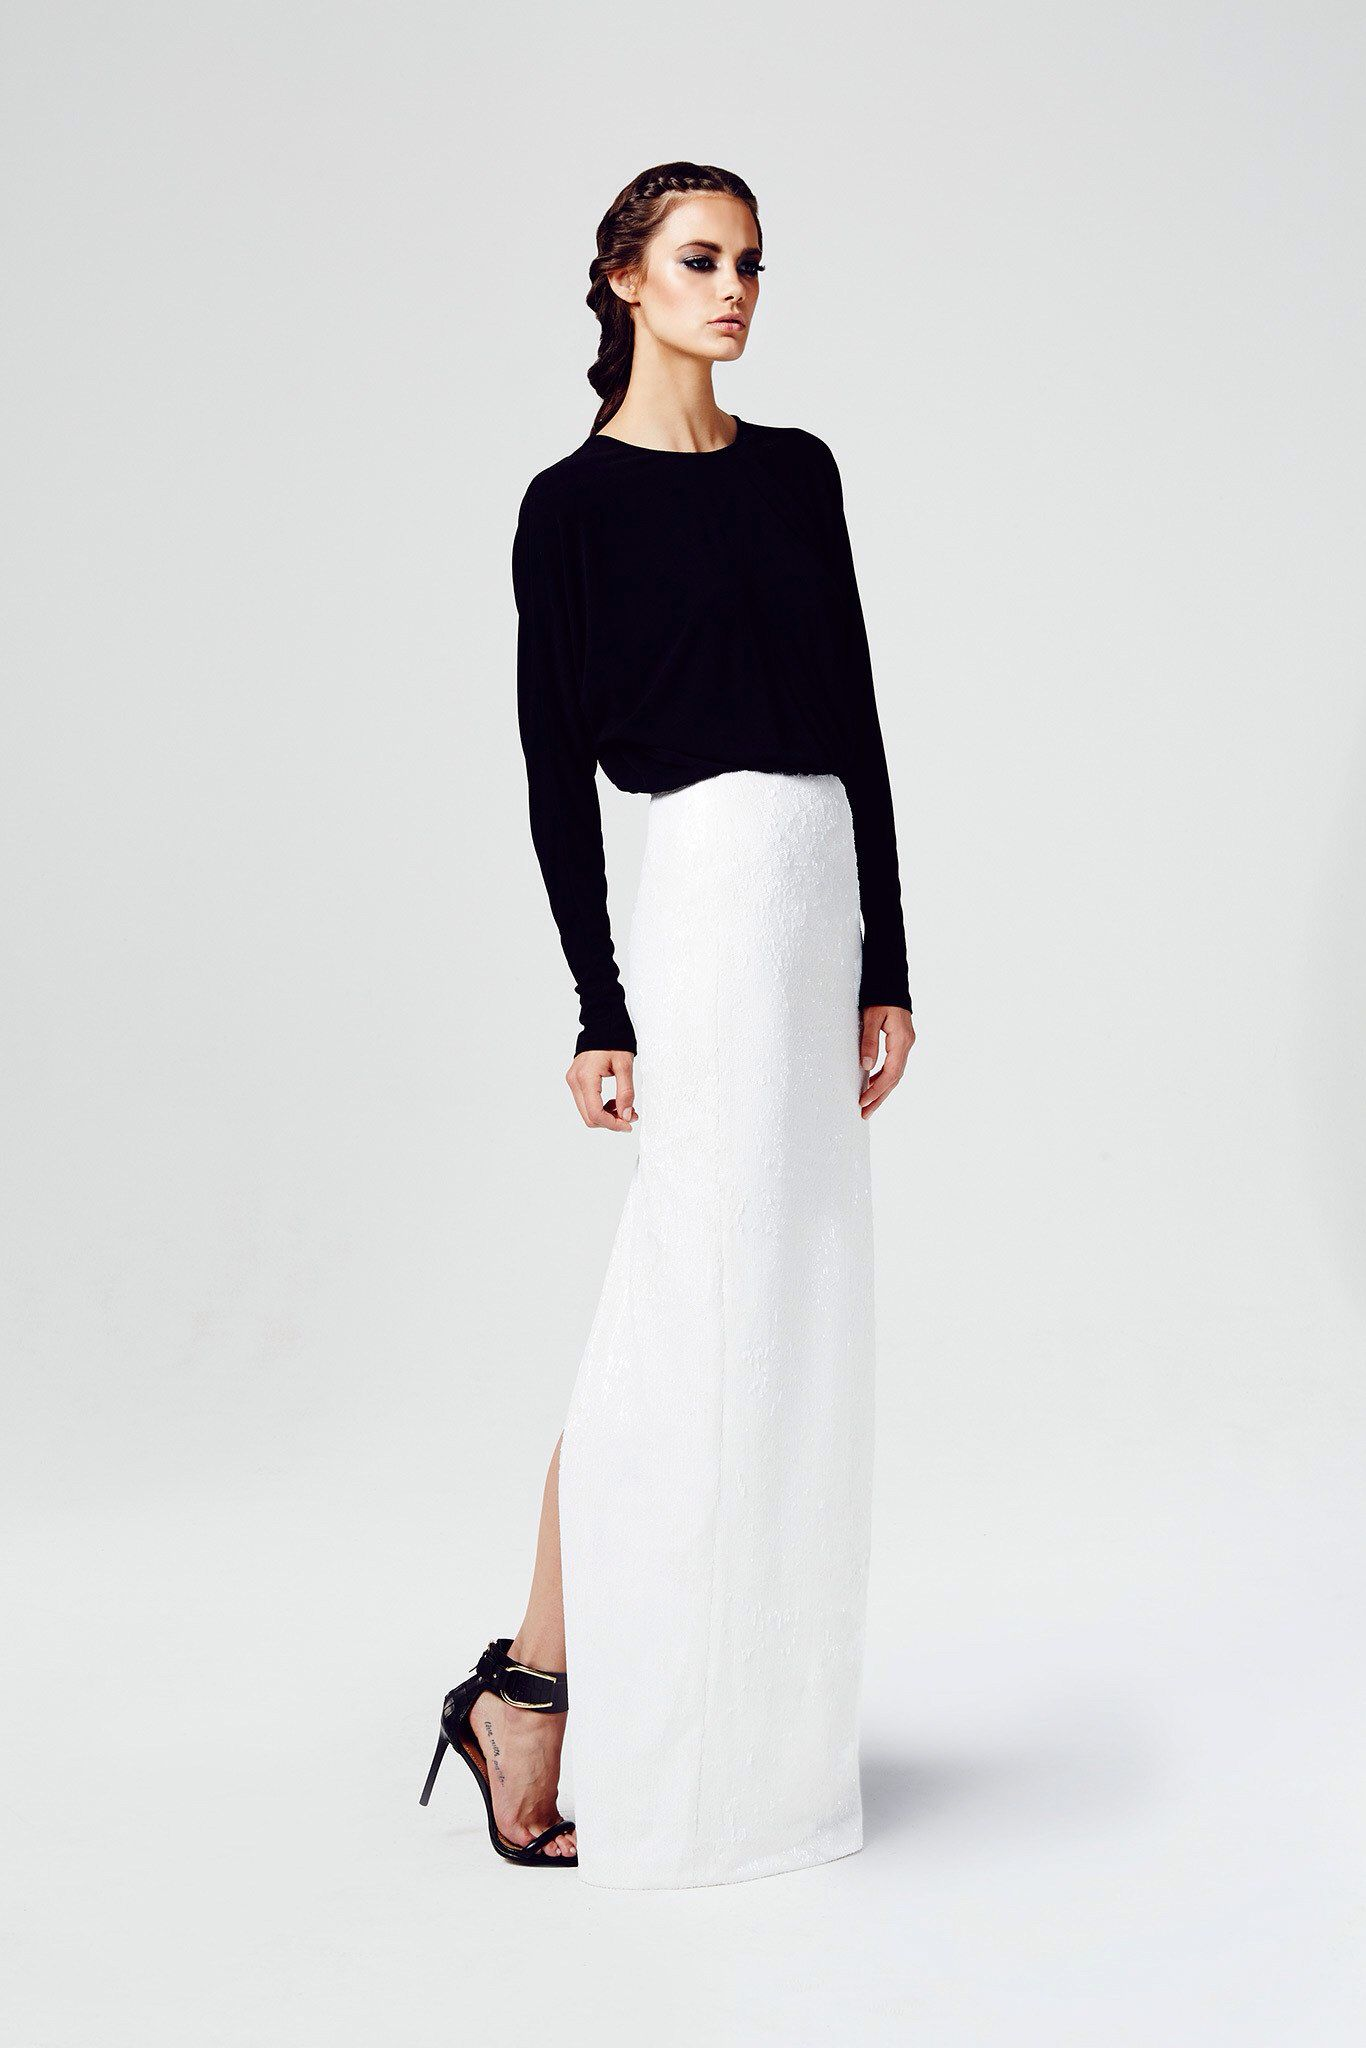 Rachel Zoe Resort 2015 Fashion Show Collection